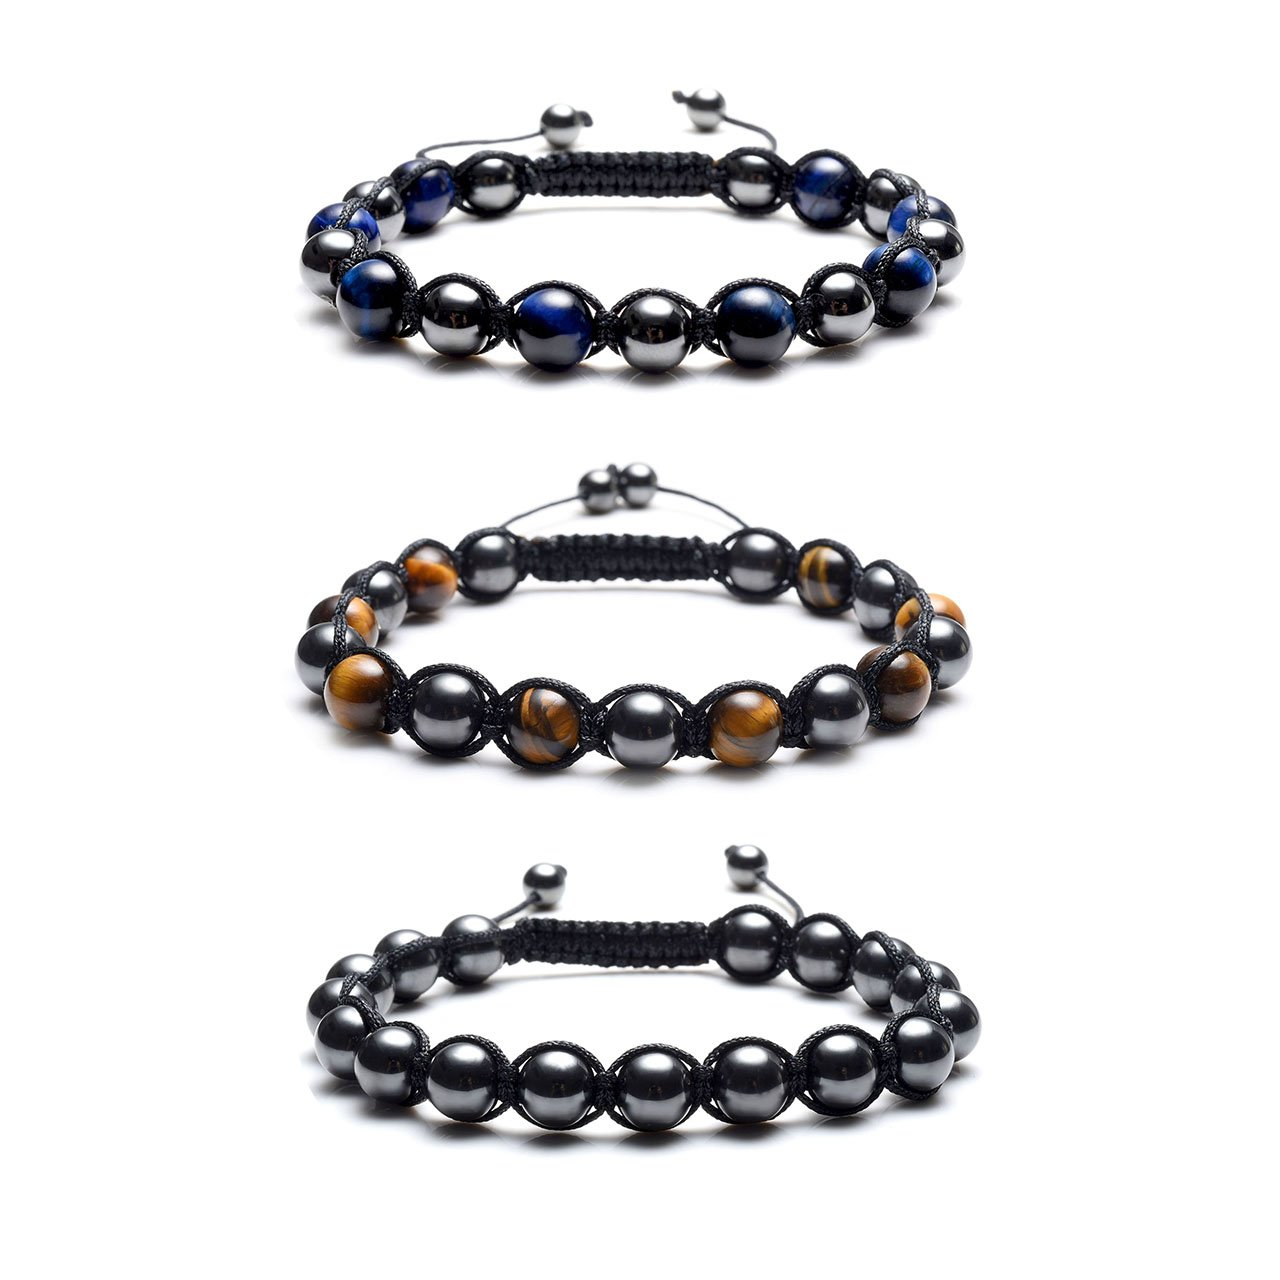 Jovivi Magnetic Therapy Bracelet - Natural Tiger Eye Stone & Hematite Healing Crystal Braided Rope Energy Beads Bracelet for Pain Relief